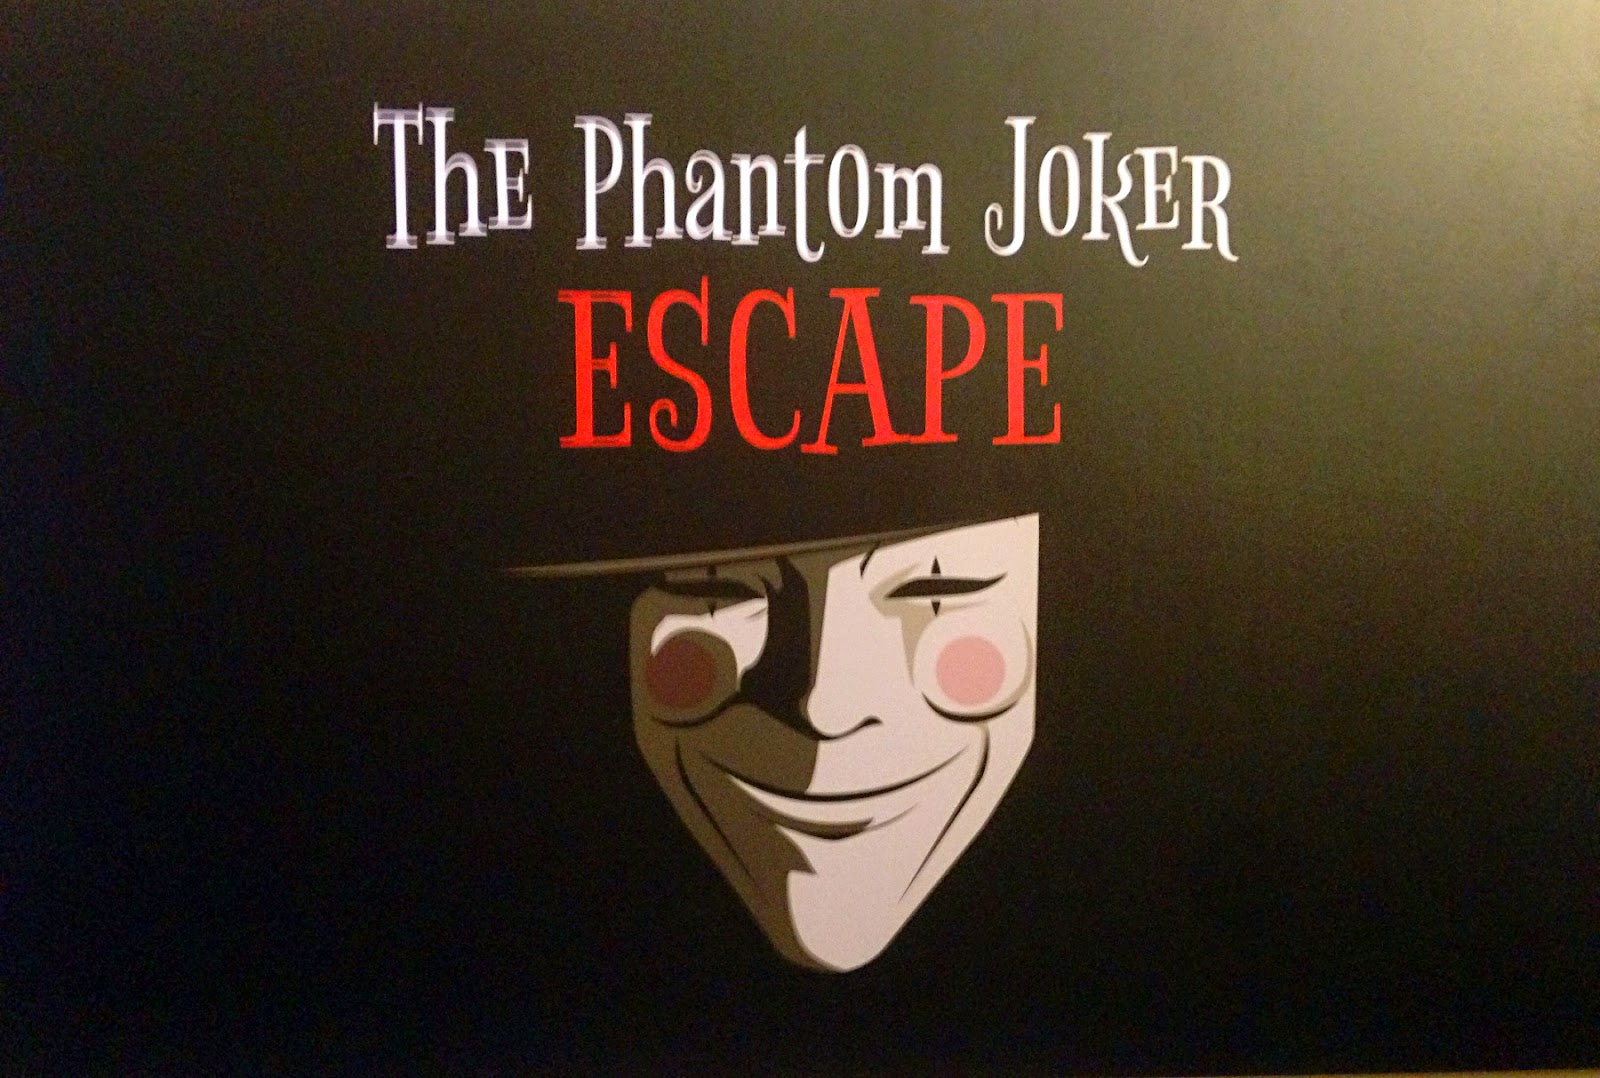 Phantom Joker Escape Singapore Map,Tourist Attractions in Singapore Things to do in Singapore,Map of Phantom Joker Escape,Singapore,Phantom Joker Escape Singapore accommodation destinations attractions hotels map reviews photos pictures